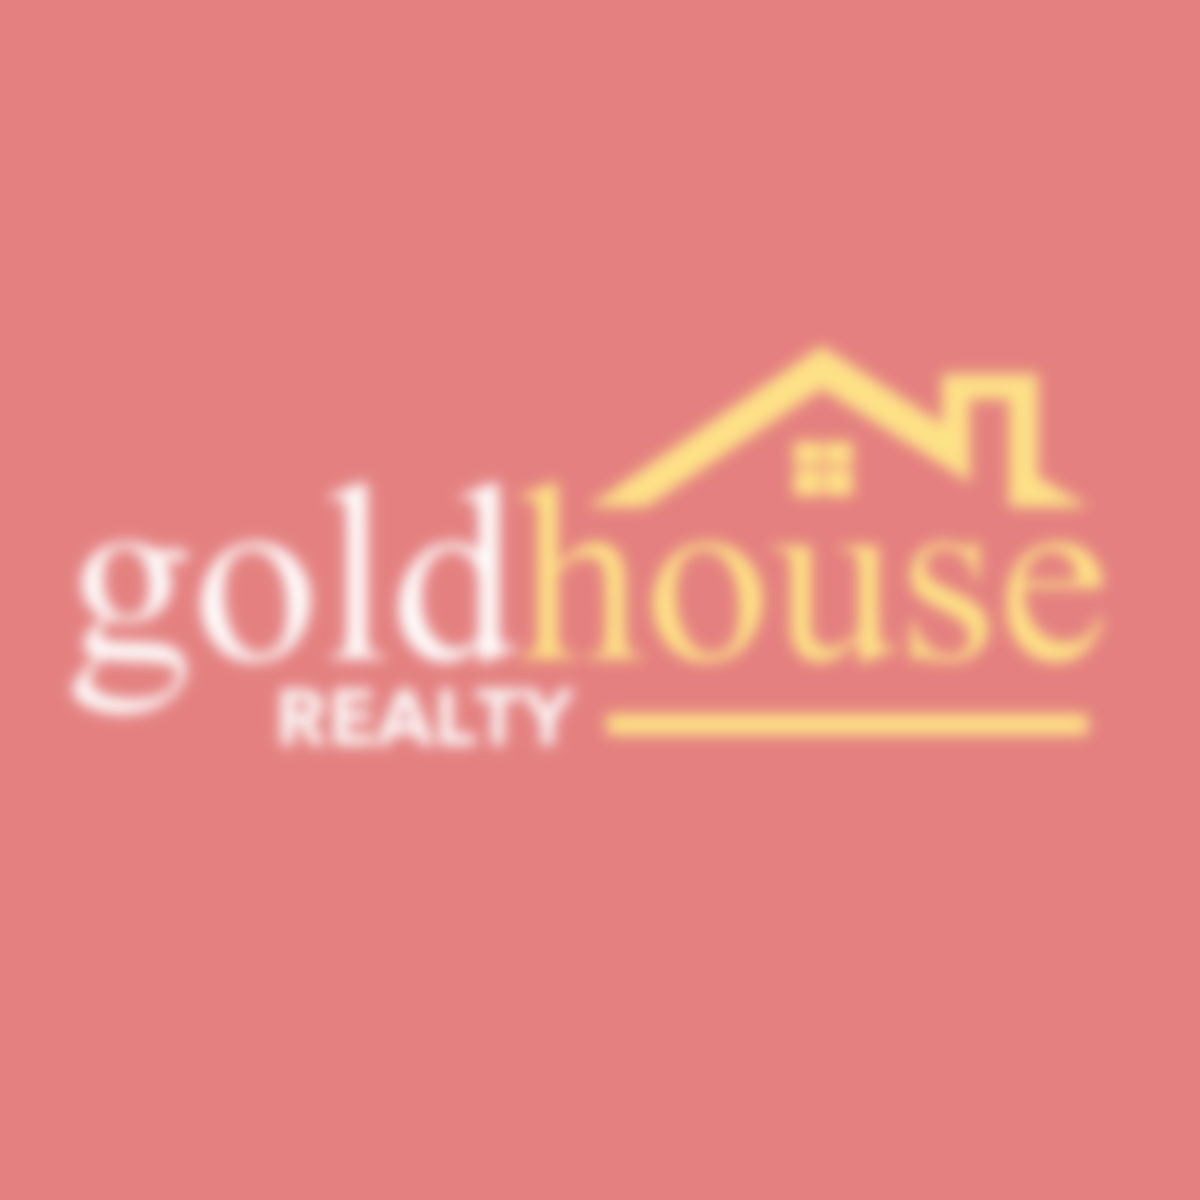 Goldhouse Realty